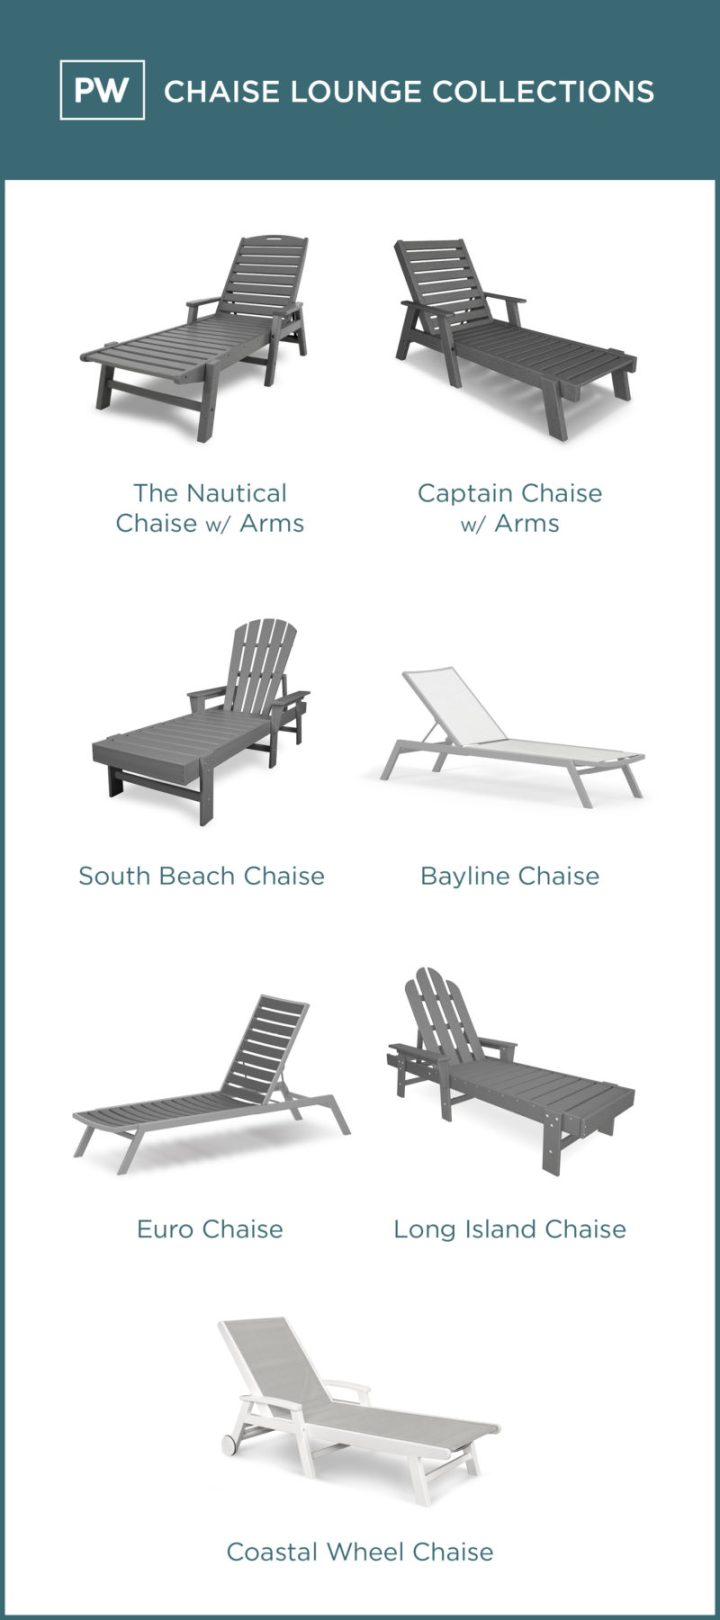 Awe Inspiring The Complete Guide To Buying A Chaise Lounge Polywood Blog Alphanode Cool Chair Designs And Ideas Alphanodeonline